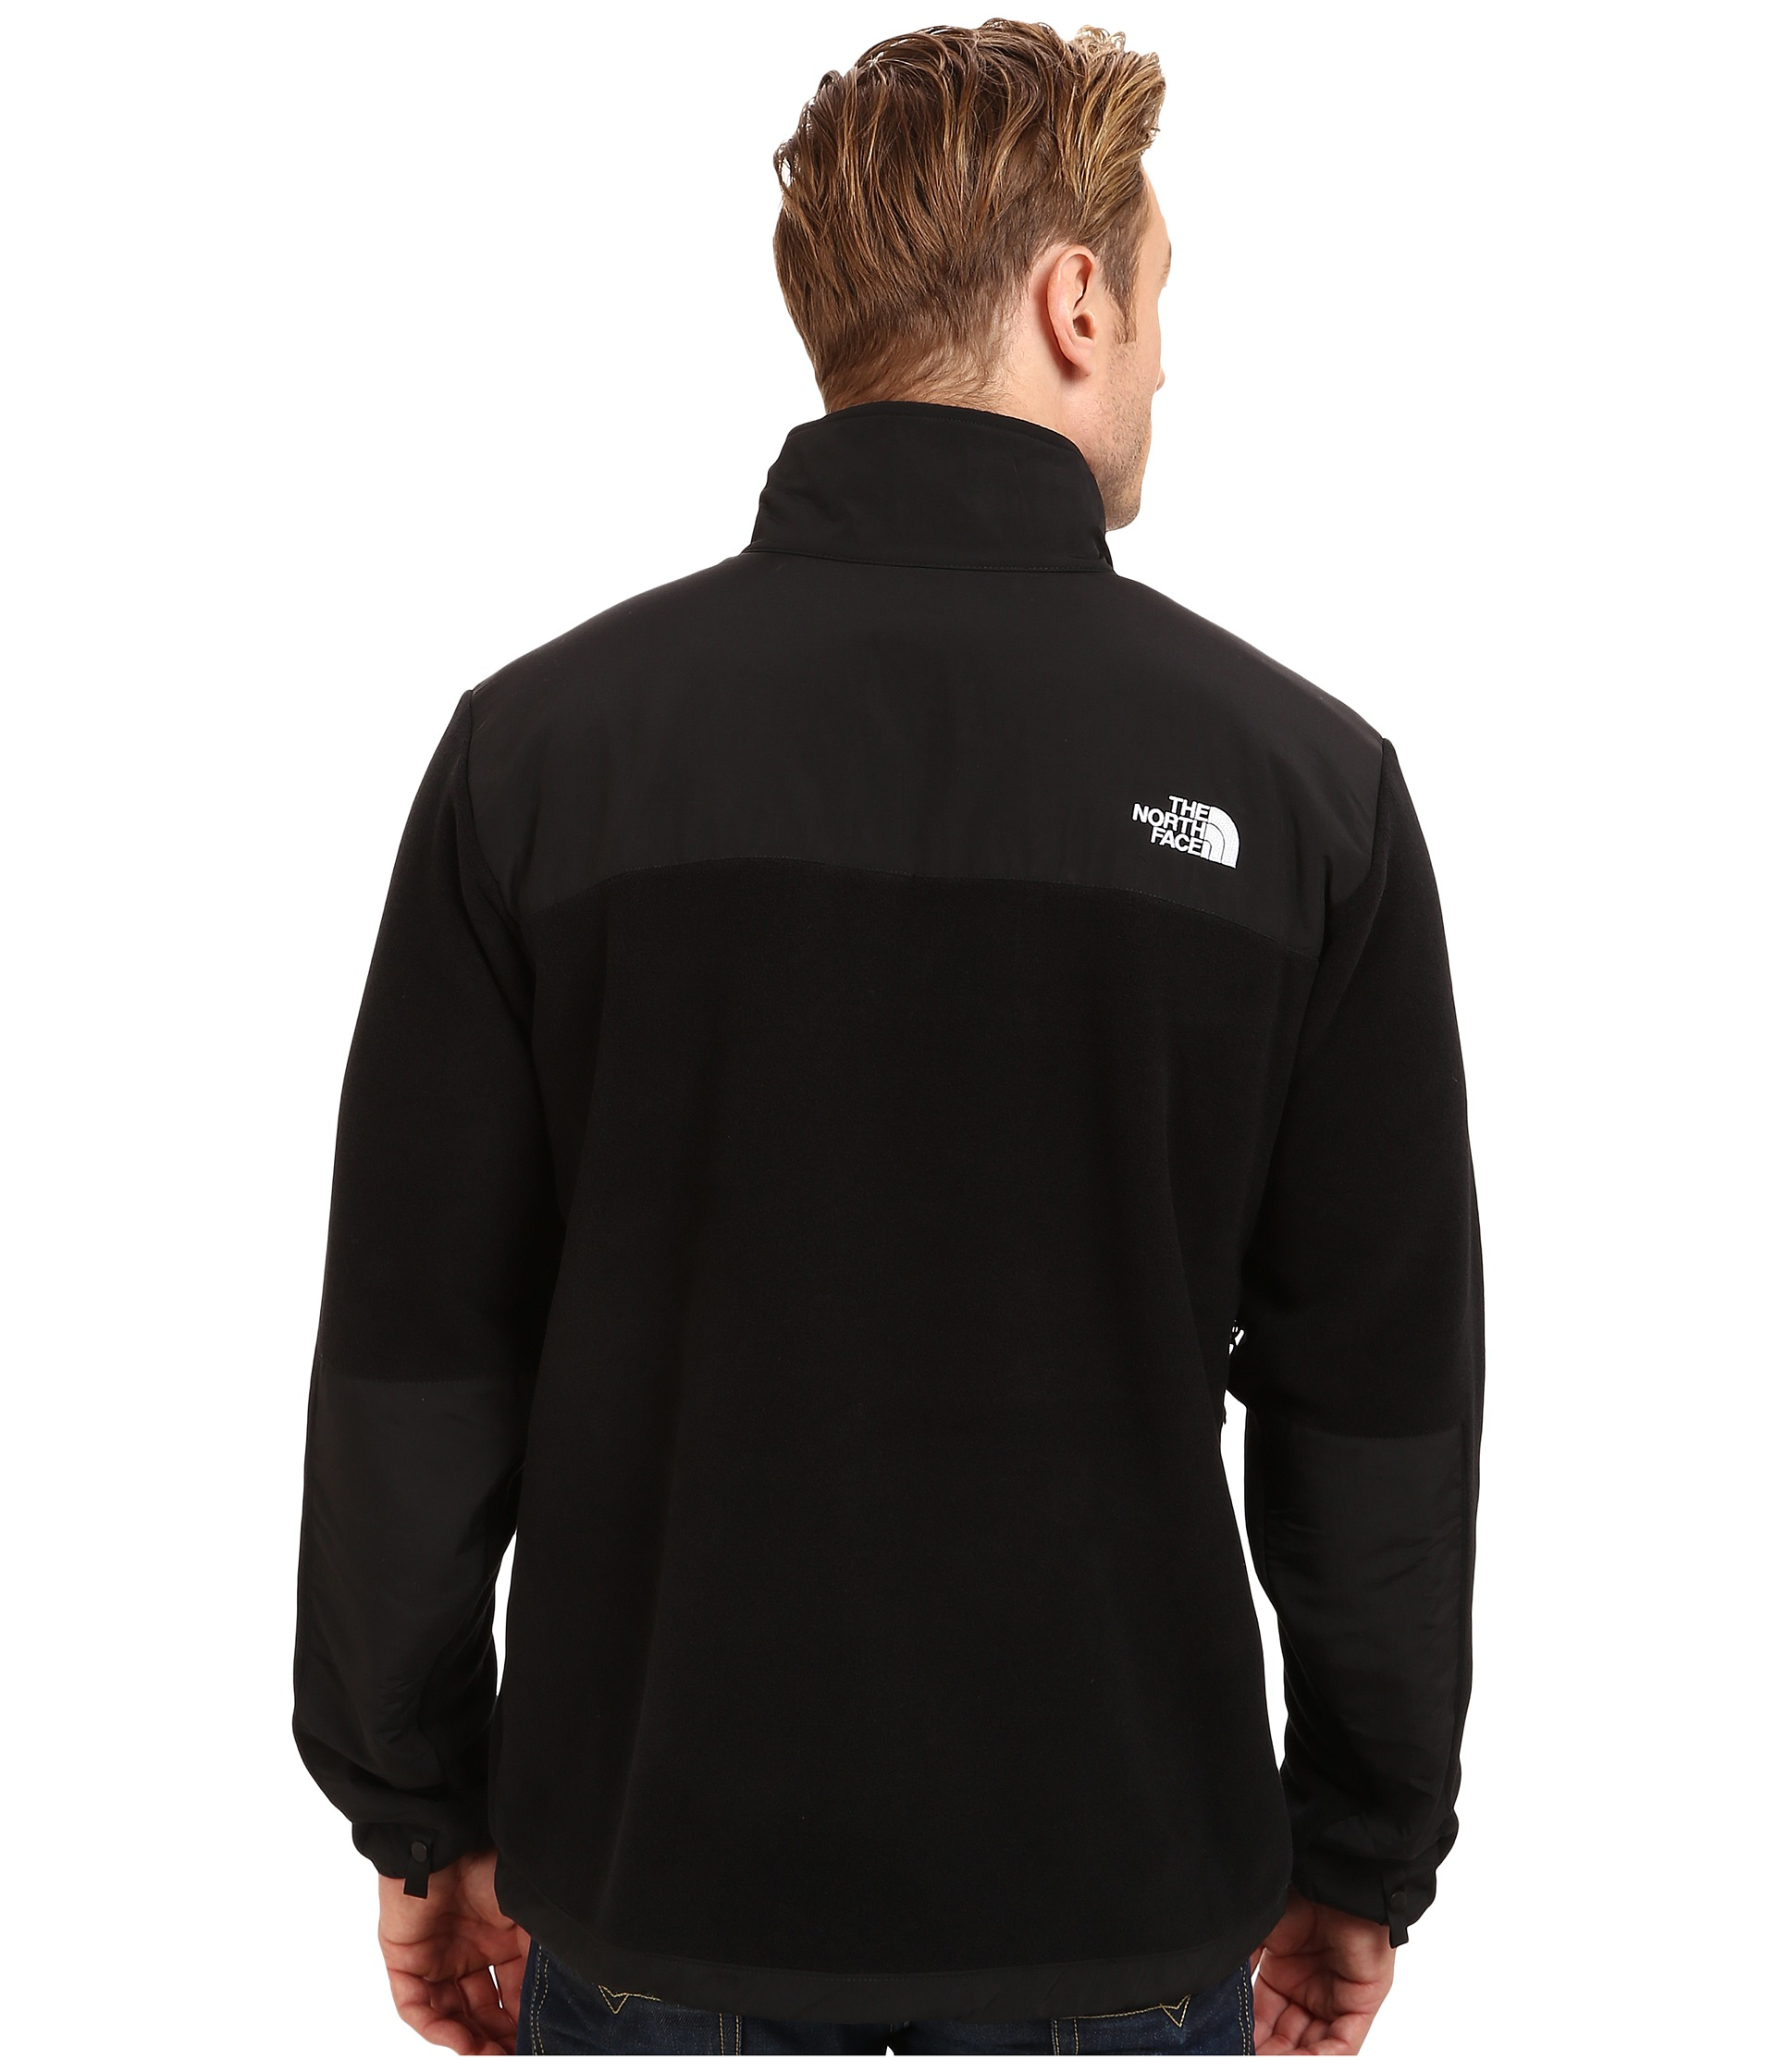 ee0ed545c11e The North Face Mens Denali Jacket BOTH on PopScreen